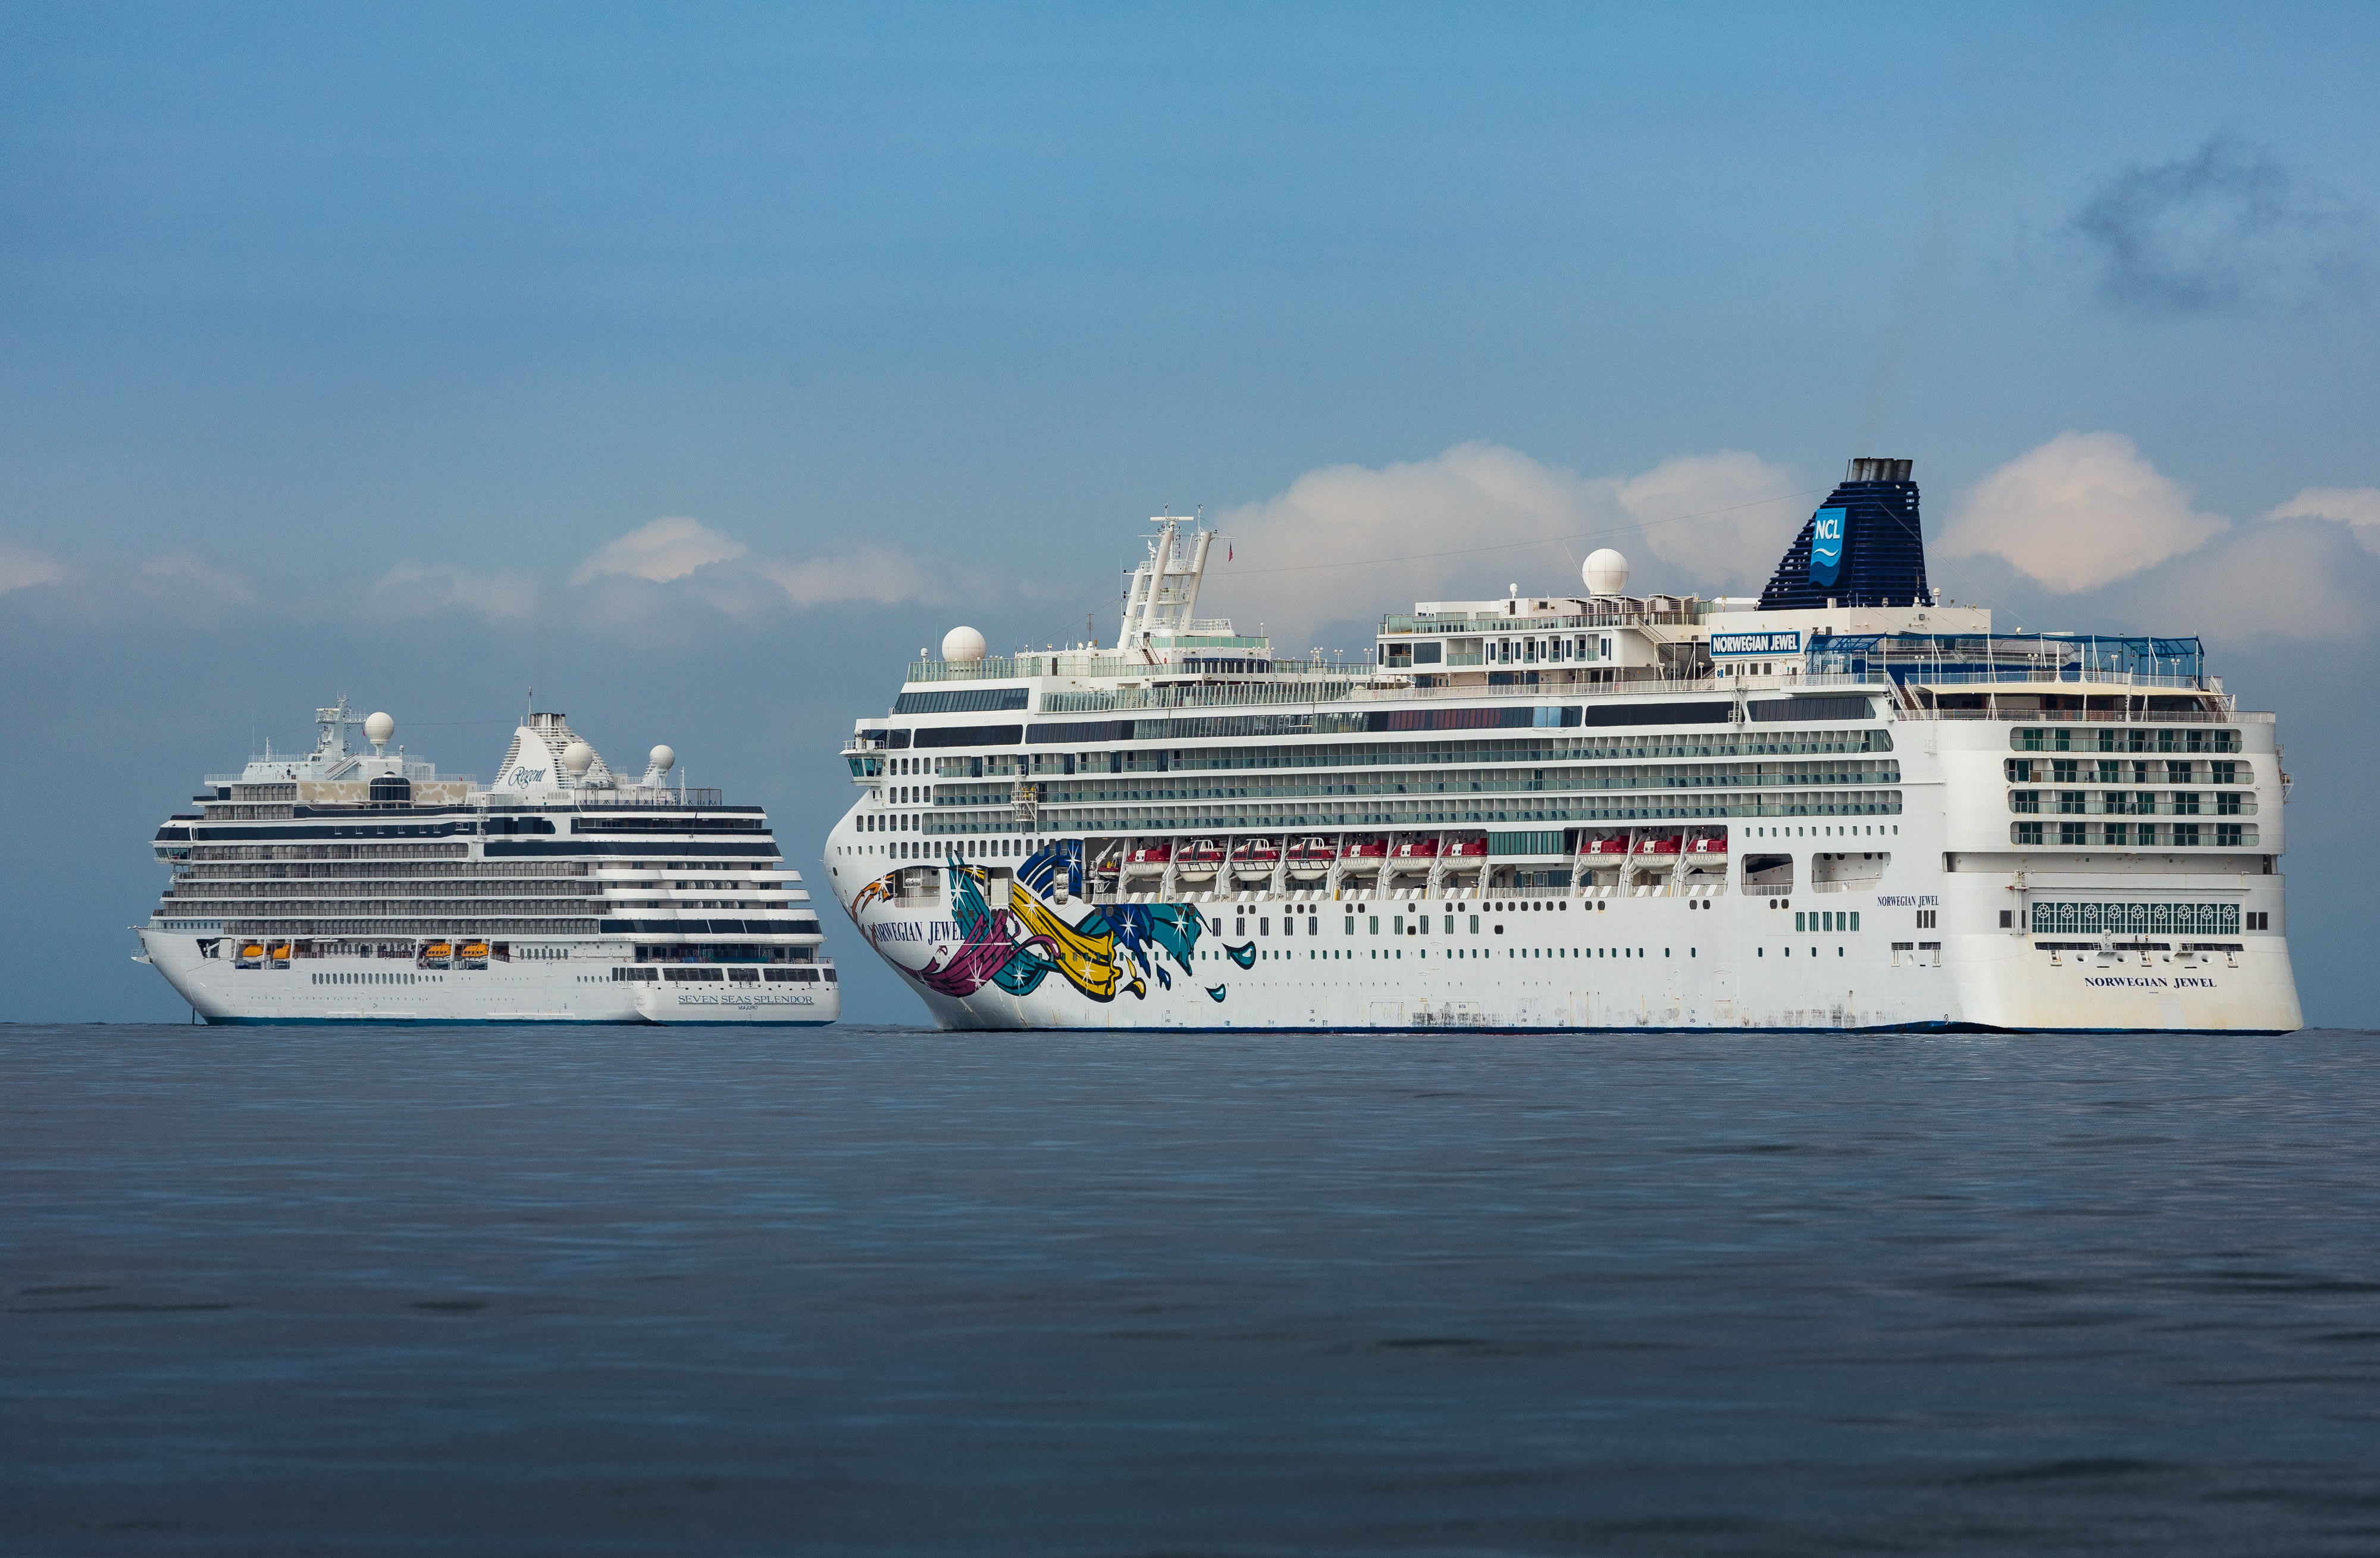 Norwegian Cruise Line shifts focus to Caribbean, European sailings as U.S. restrictions continue